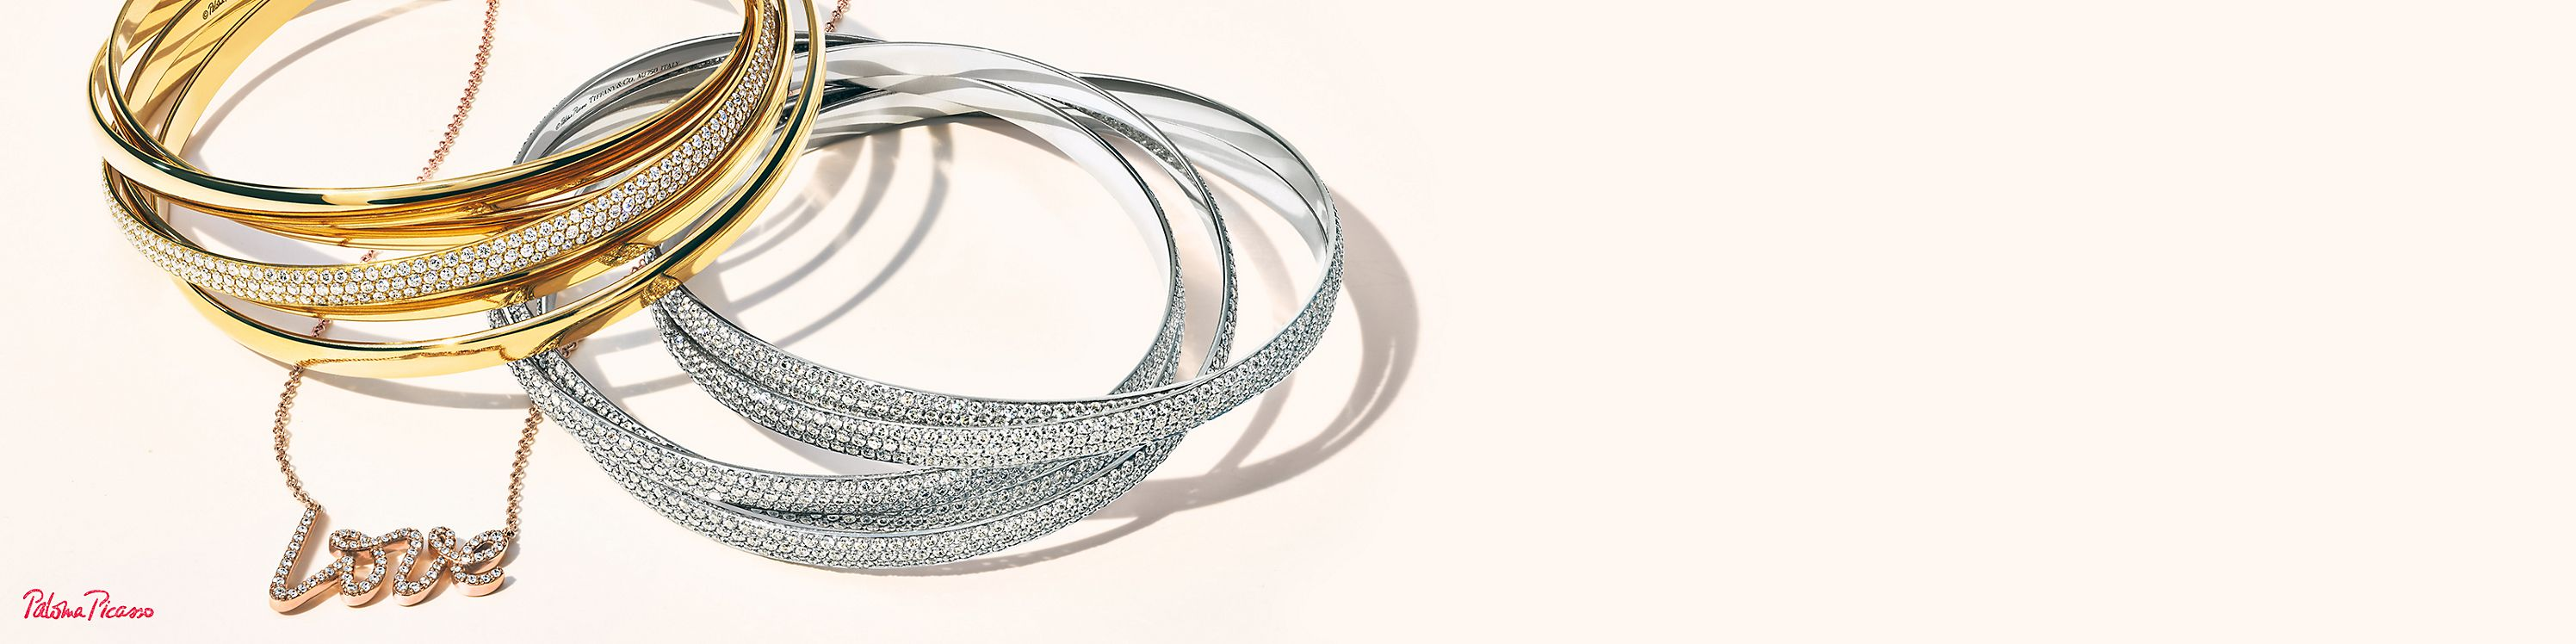 Tiffany & Co. Paloma Picasso® Kollektion ansehen